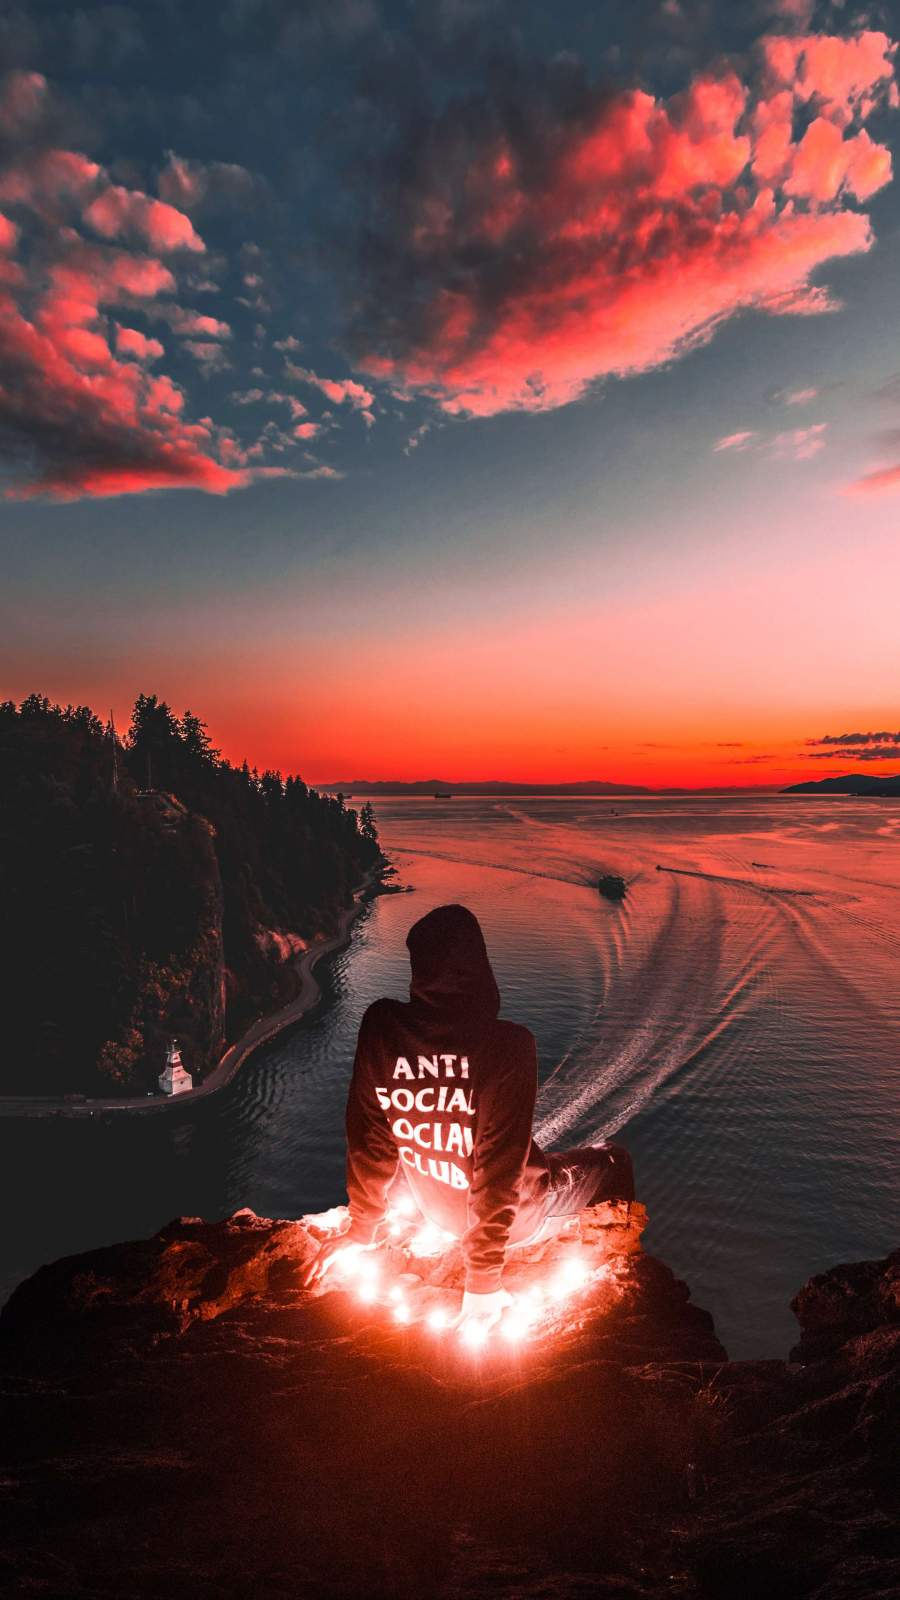 Anti Social Club Sunset Iphone Wallpaper Sunset Phone